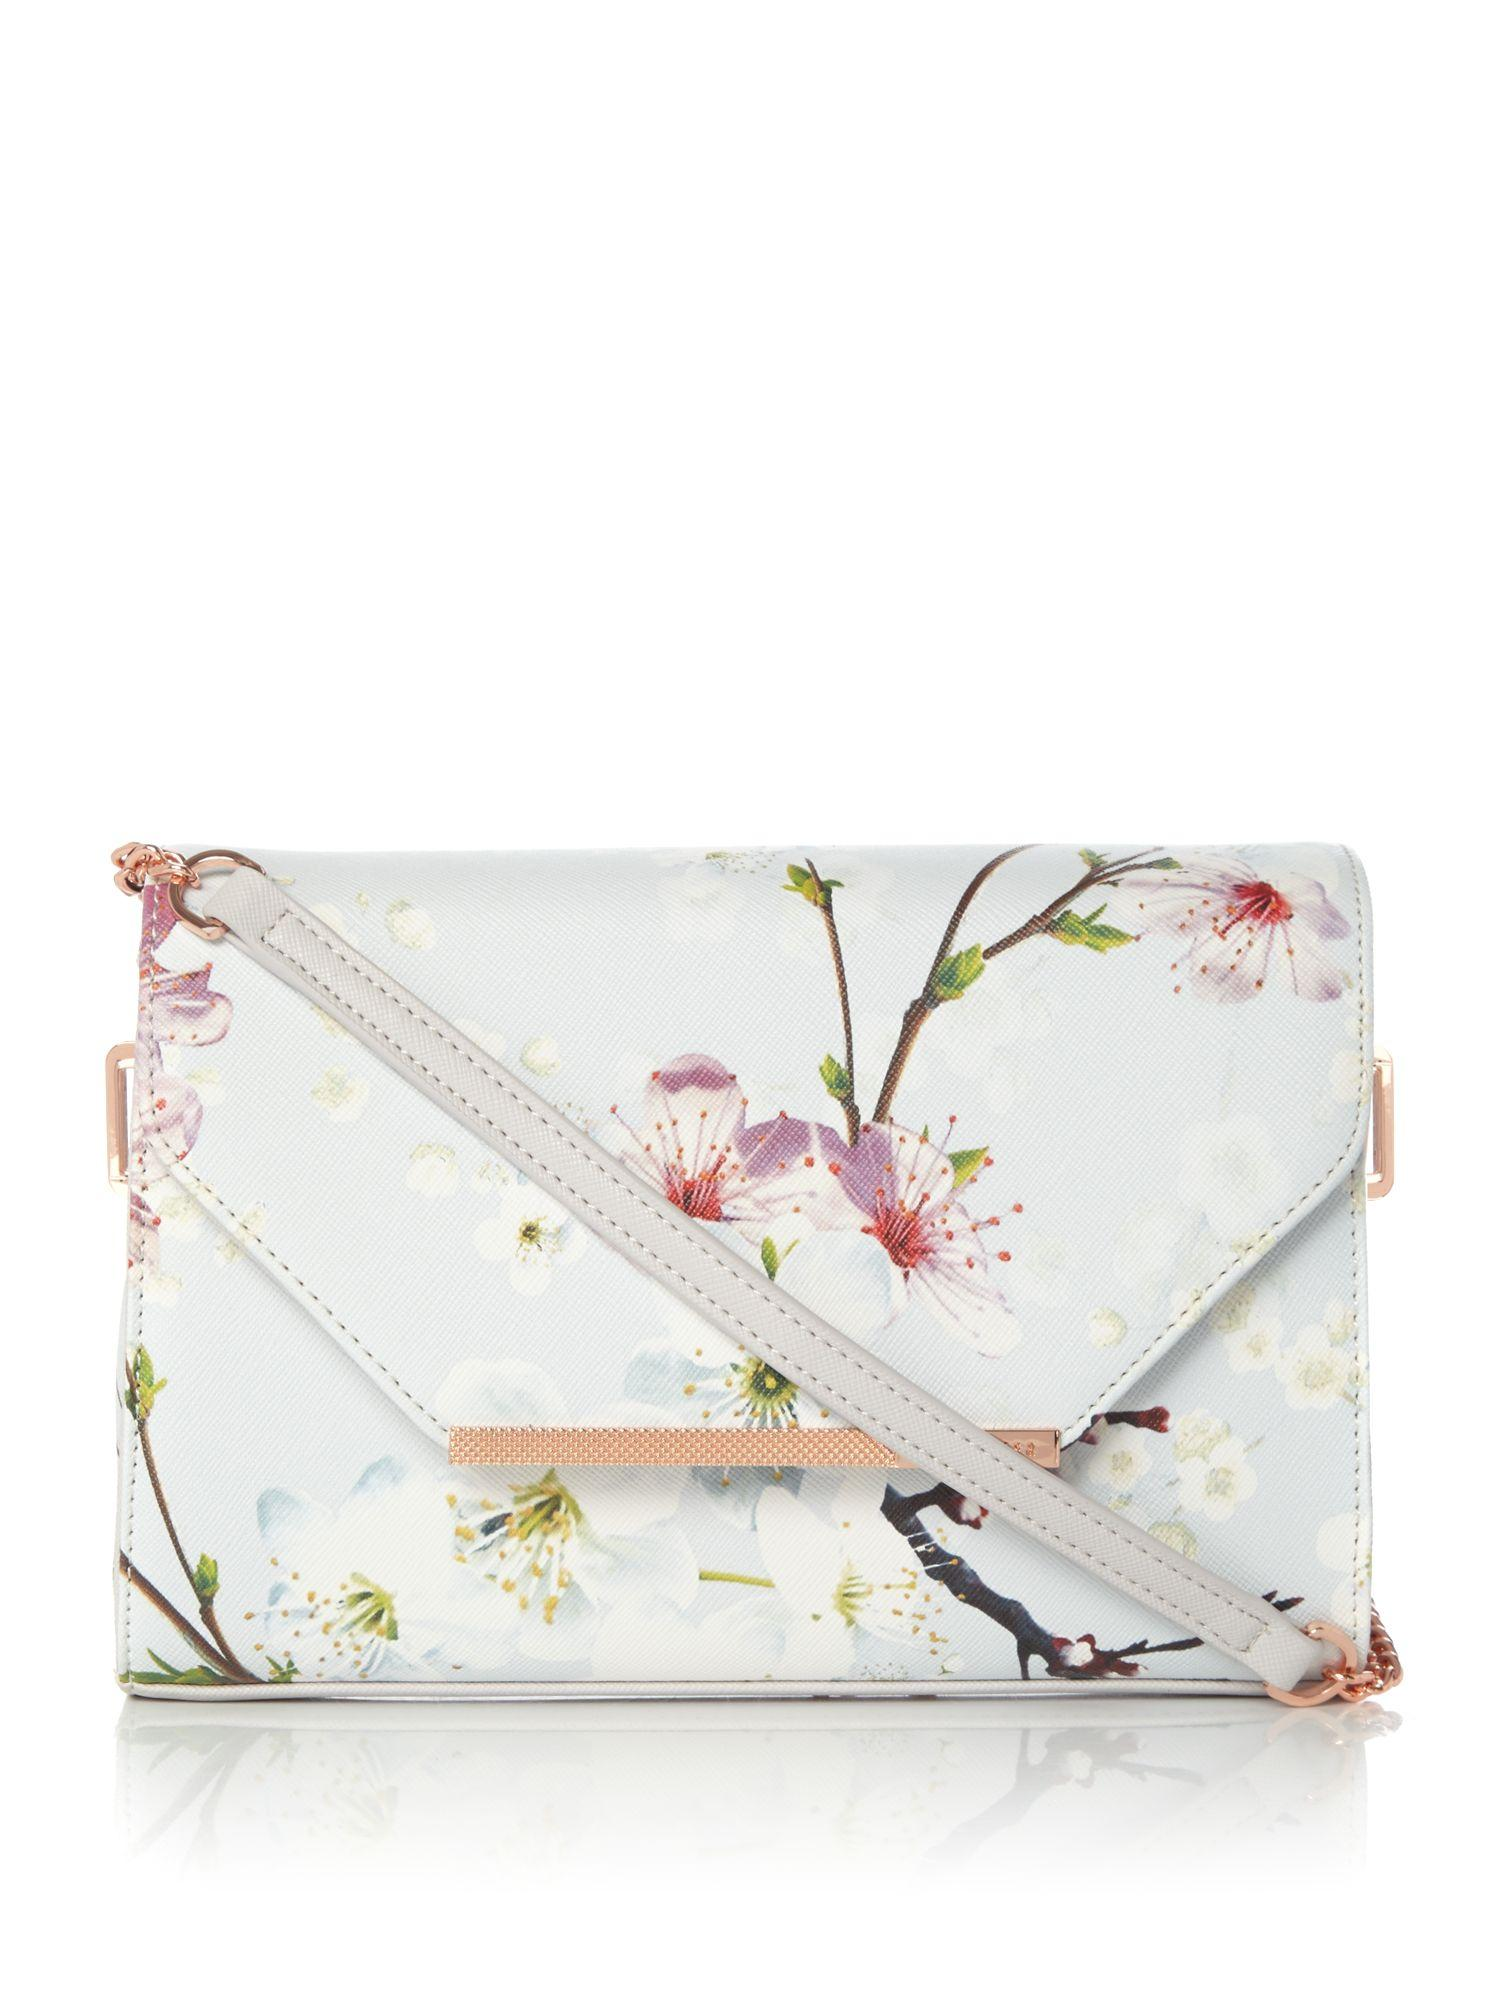 Ted Baker Hadly Floral Crossbody Bag In Gray | Lyst